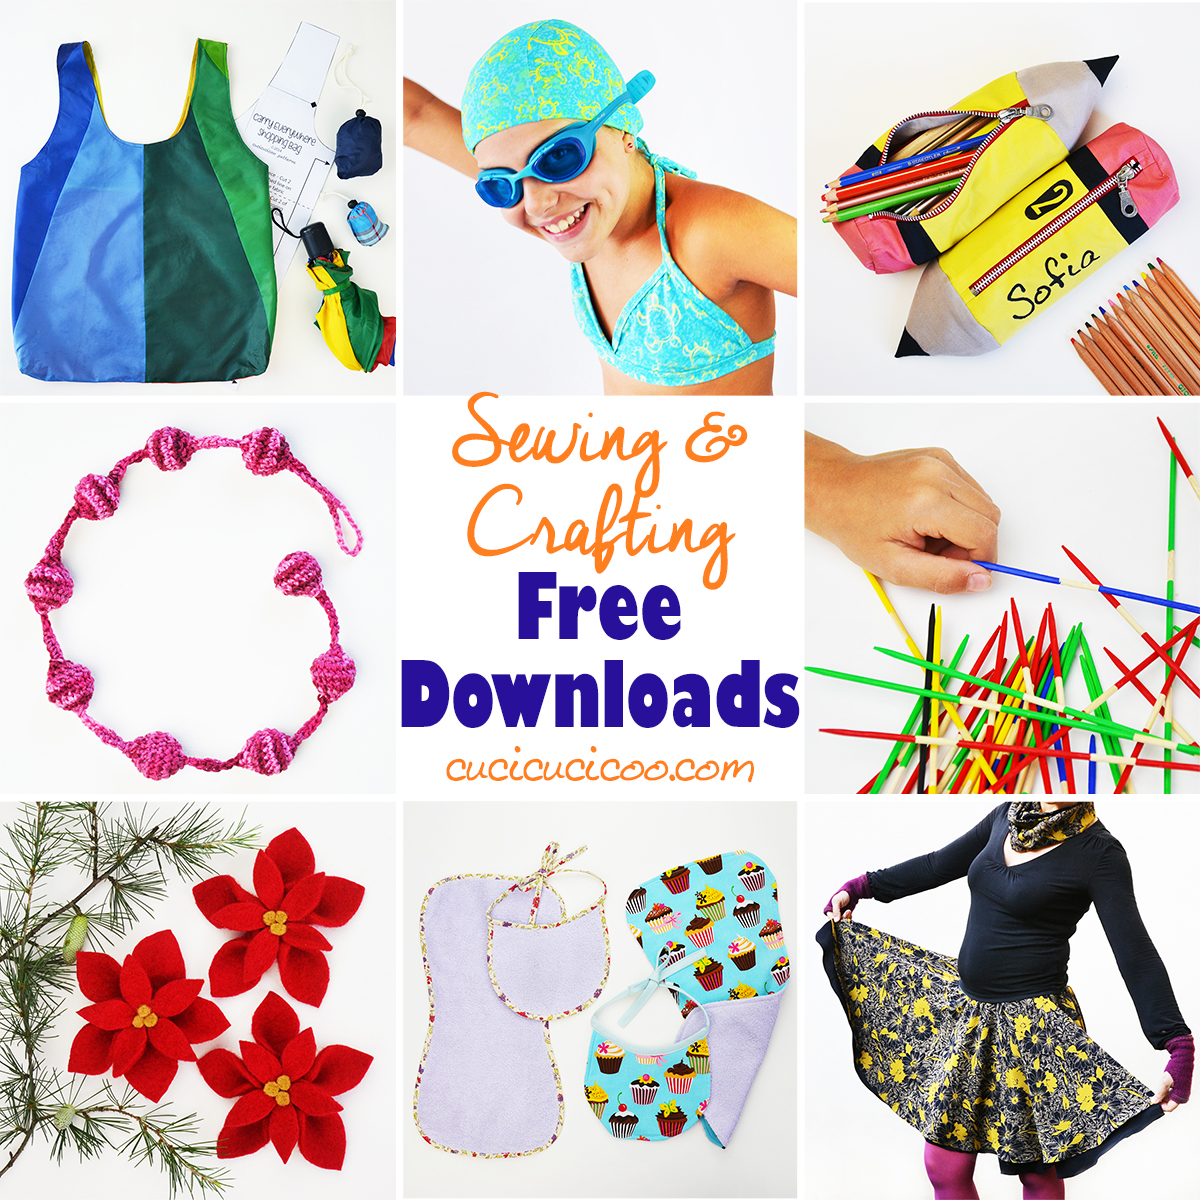 How to get free sewing patterns from Cucicucicoo! - Cucicucicoo